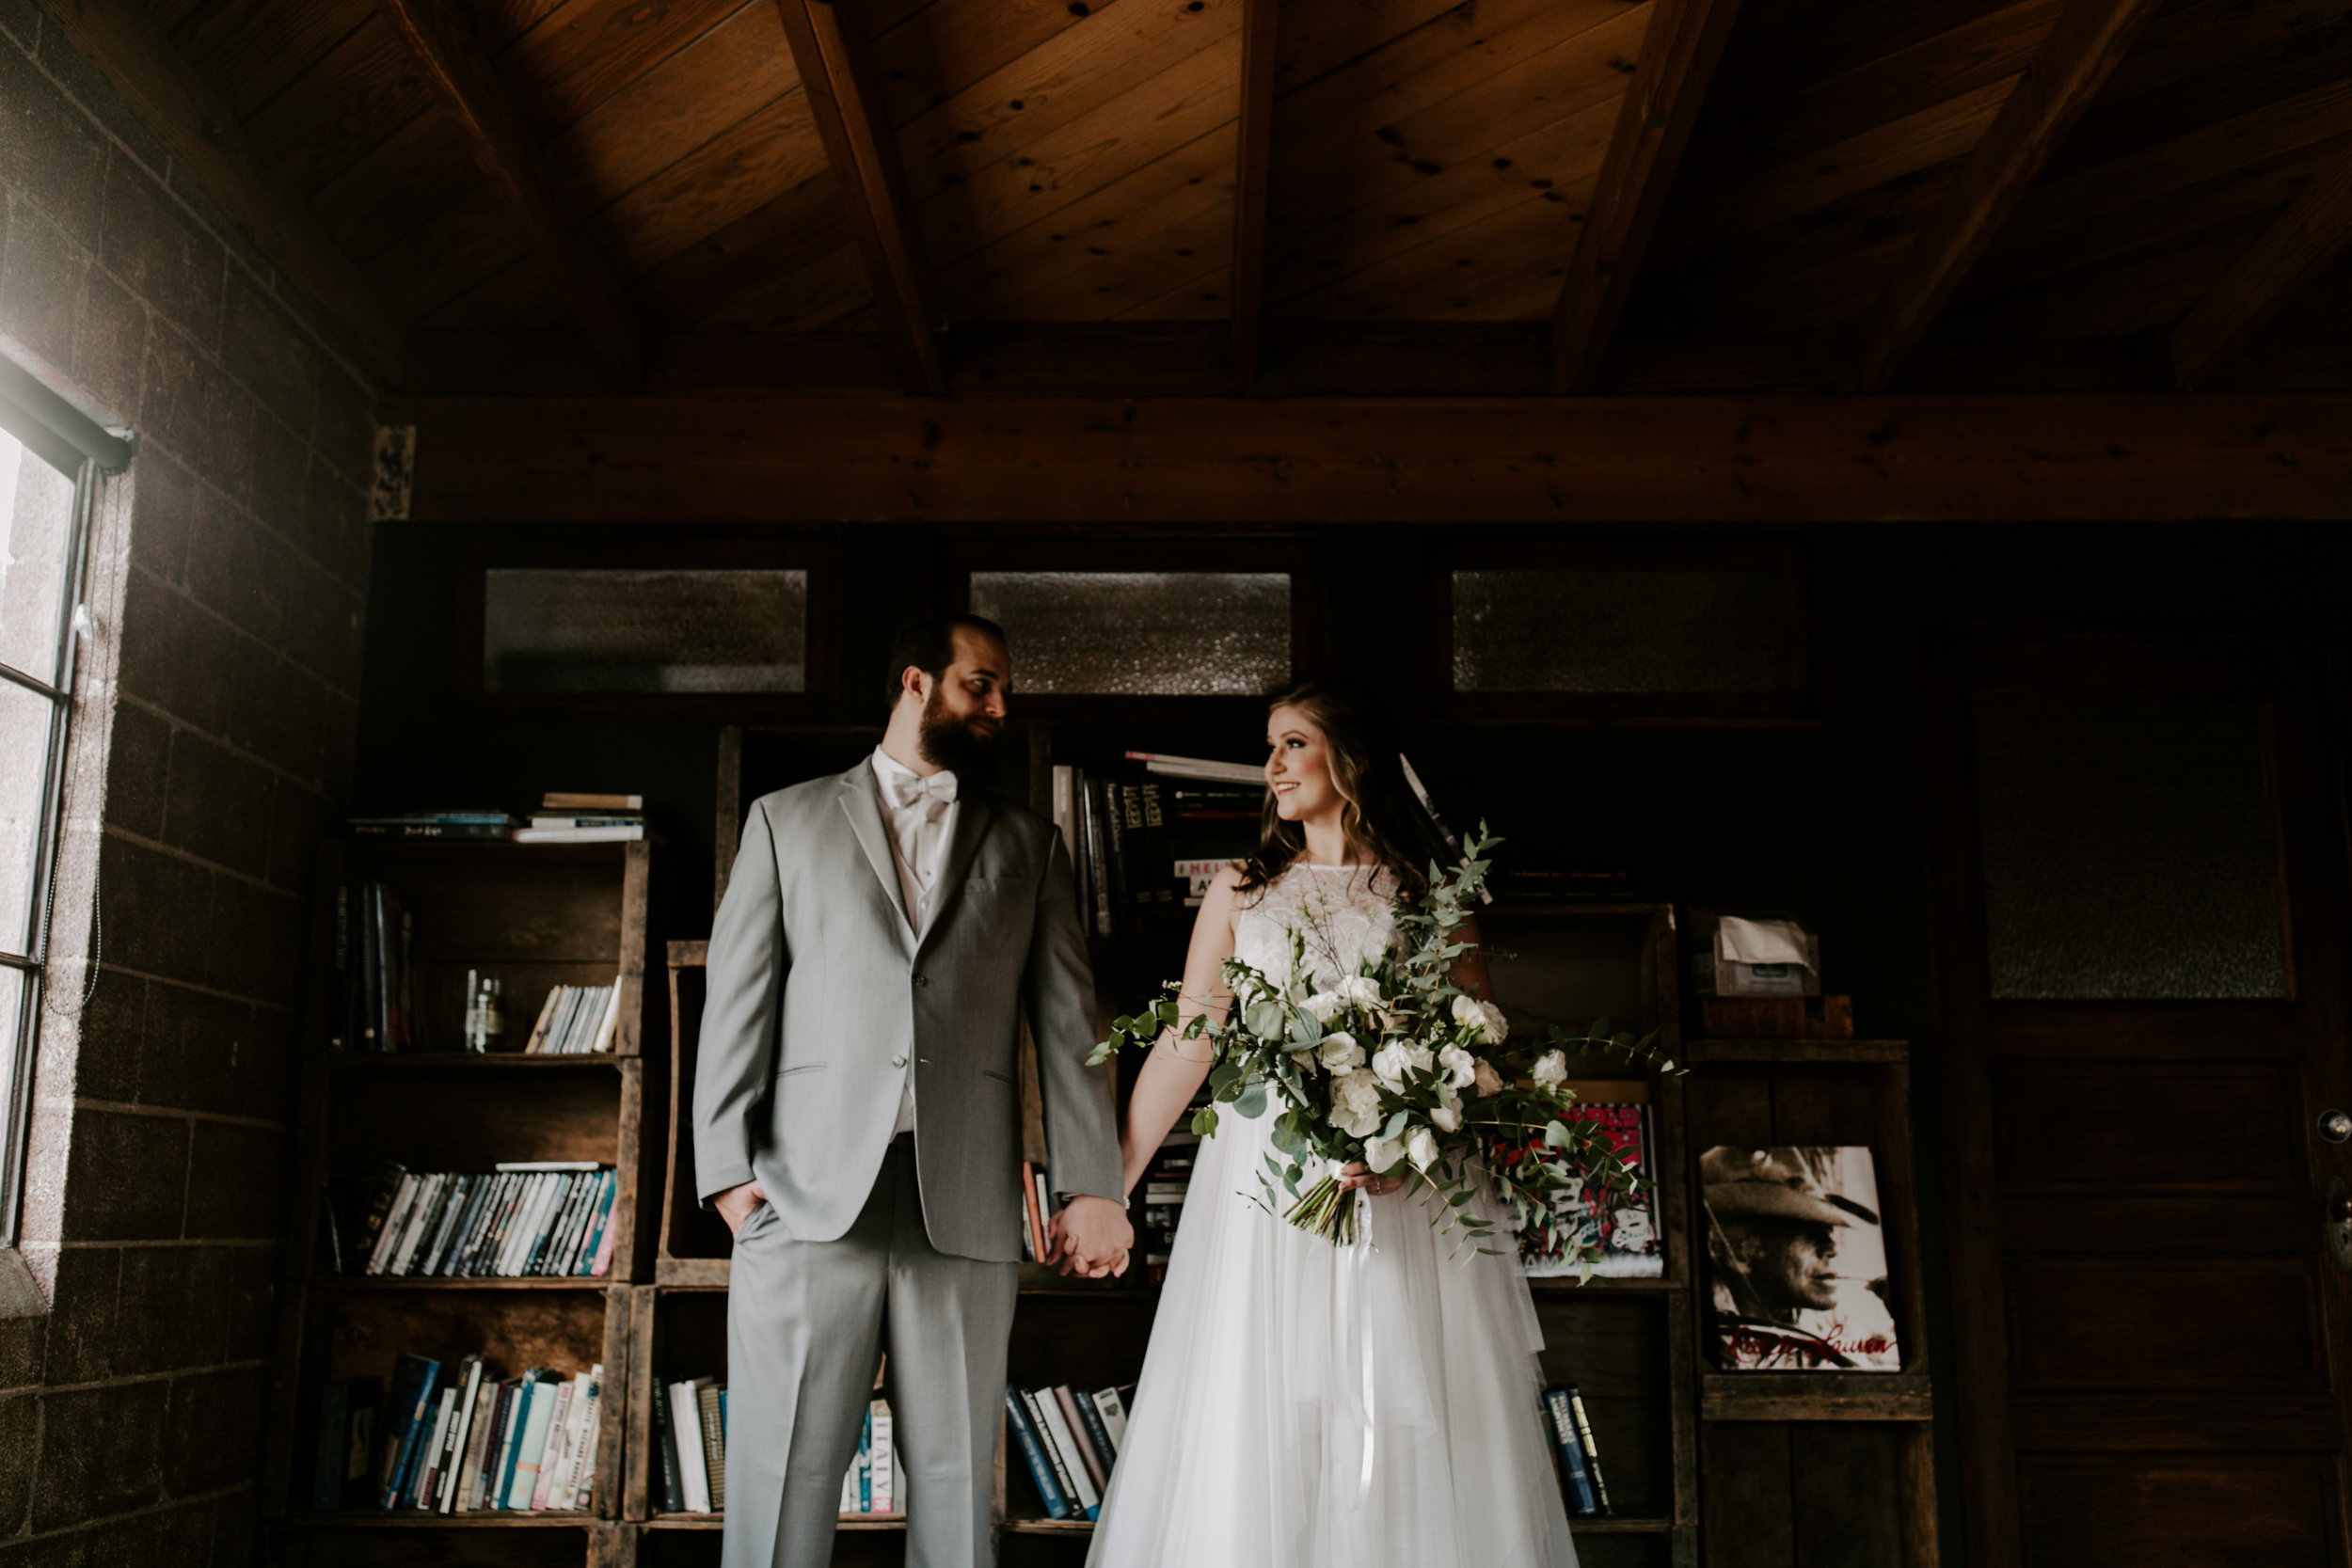 Smoky Hollow Studios Wedding Anne & Lewis Emily Magers Photography-402.jpg